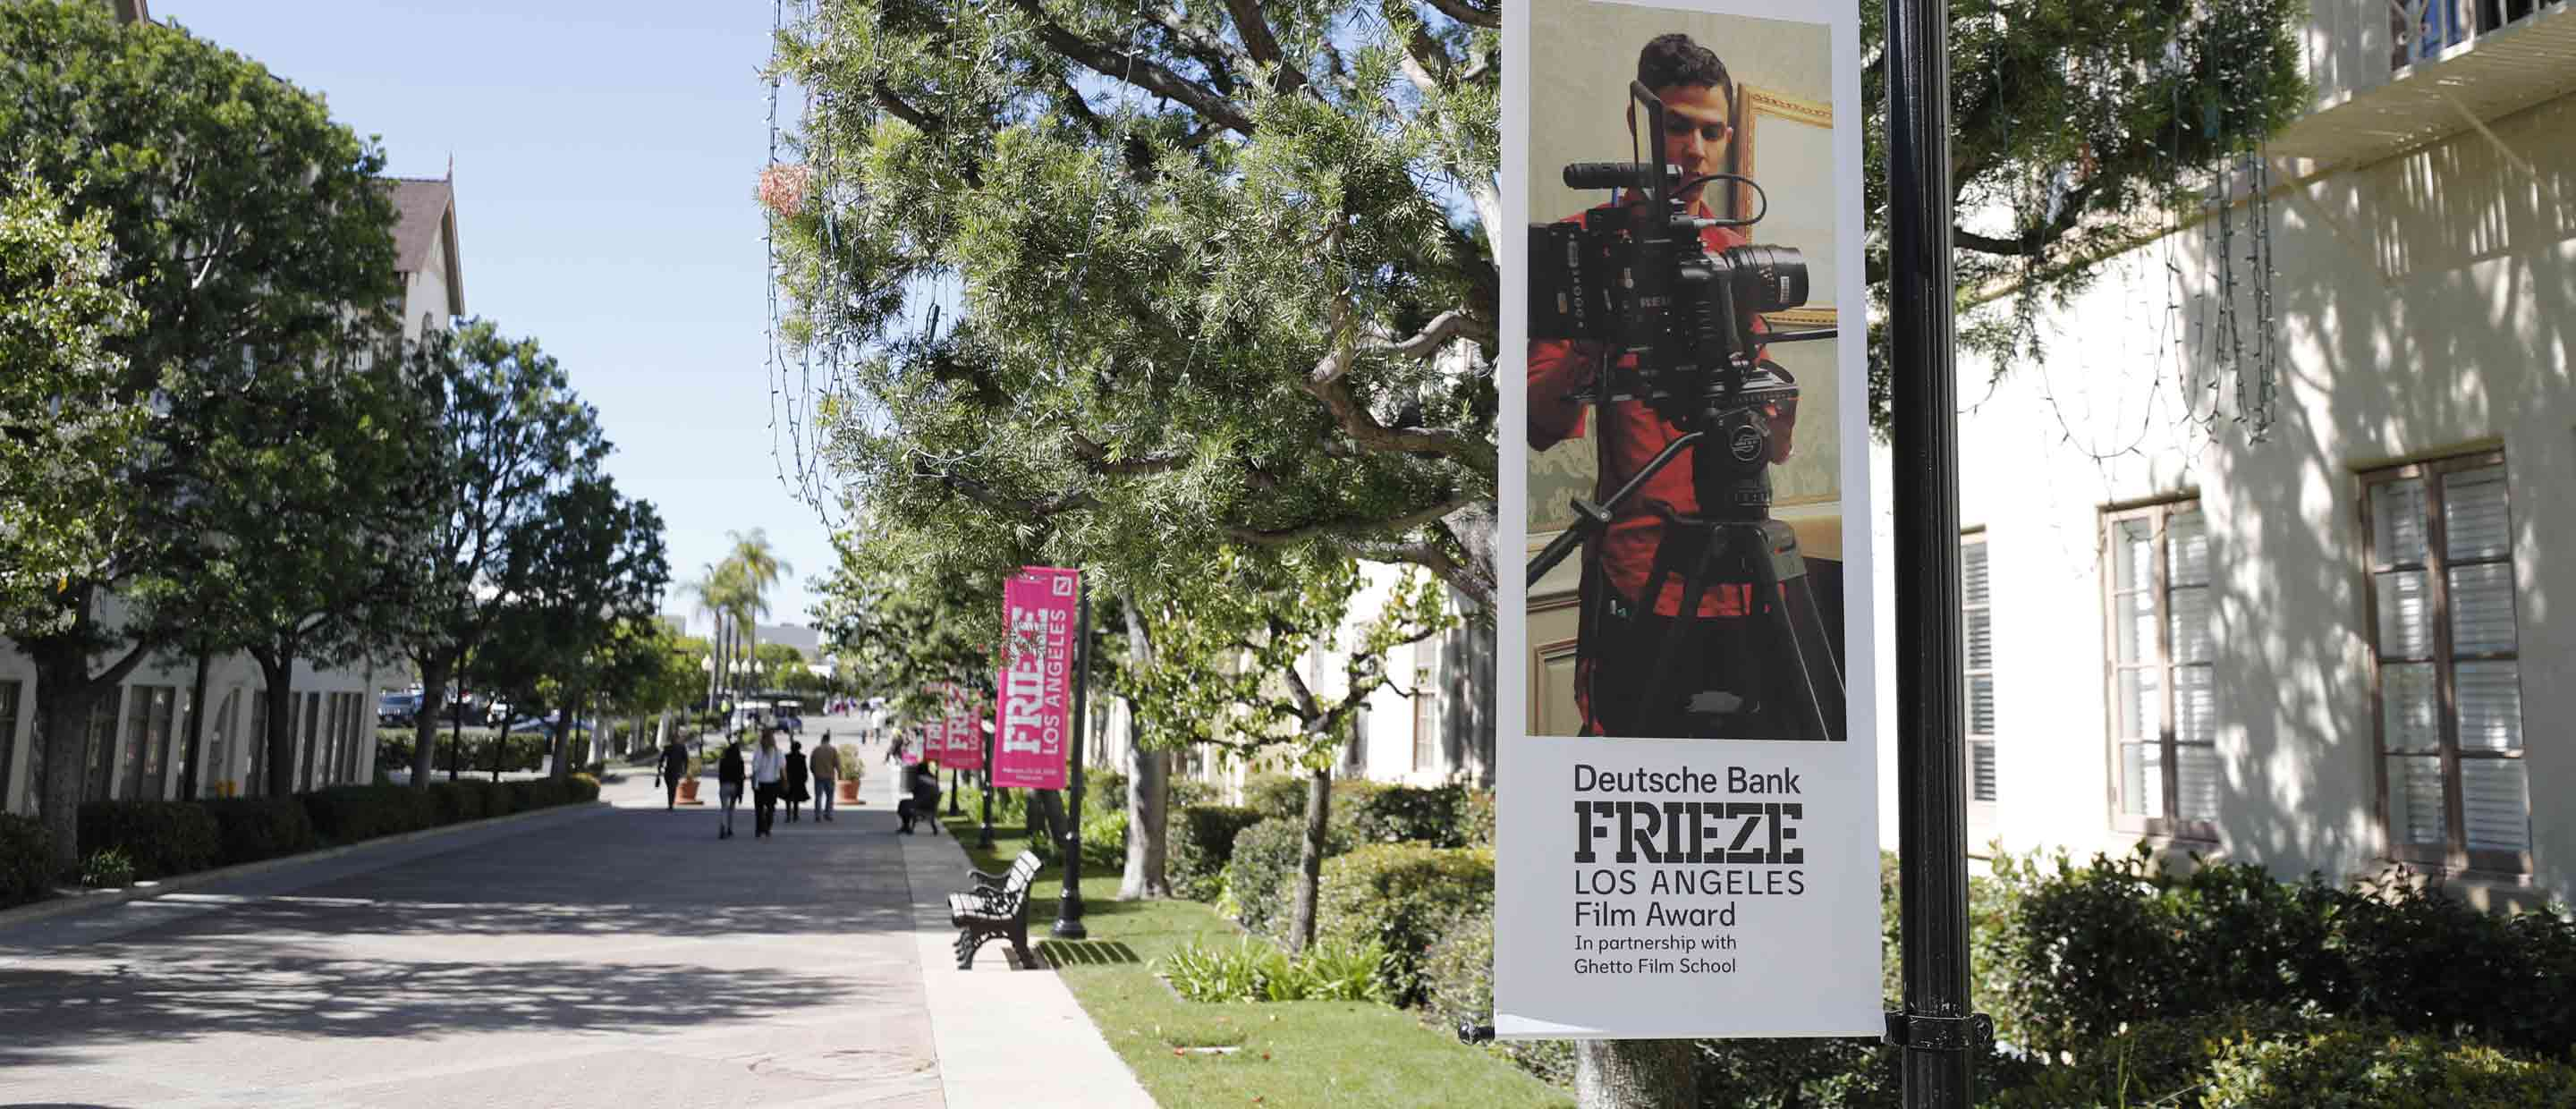 Frieze LA: the fair returns with a new film award